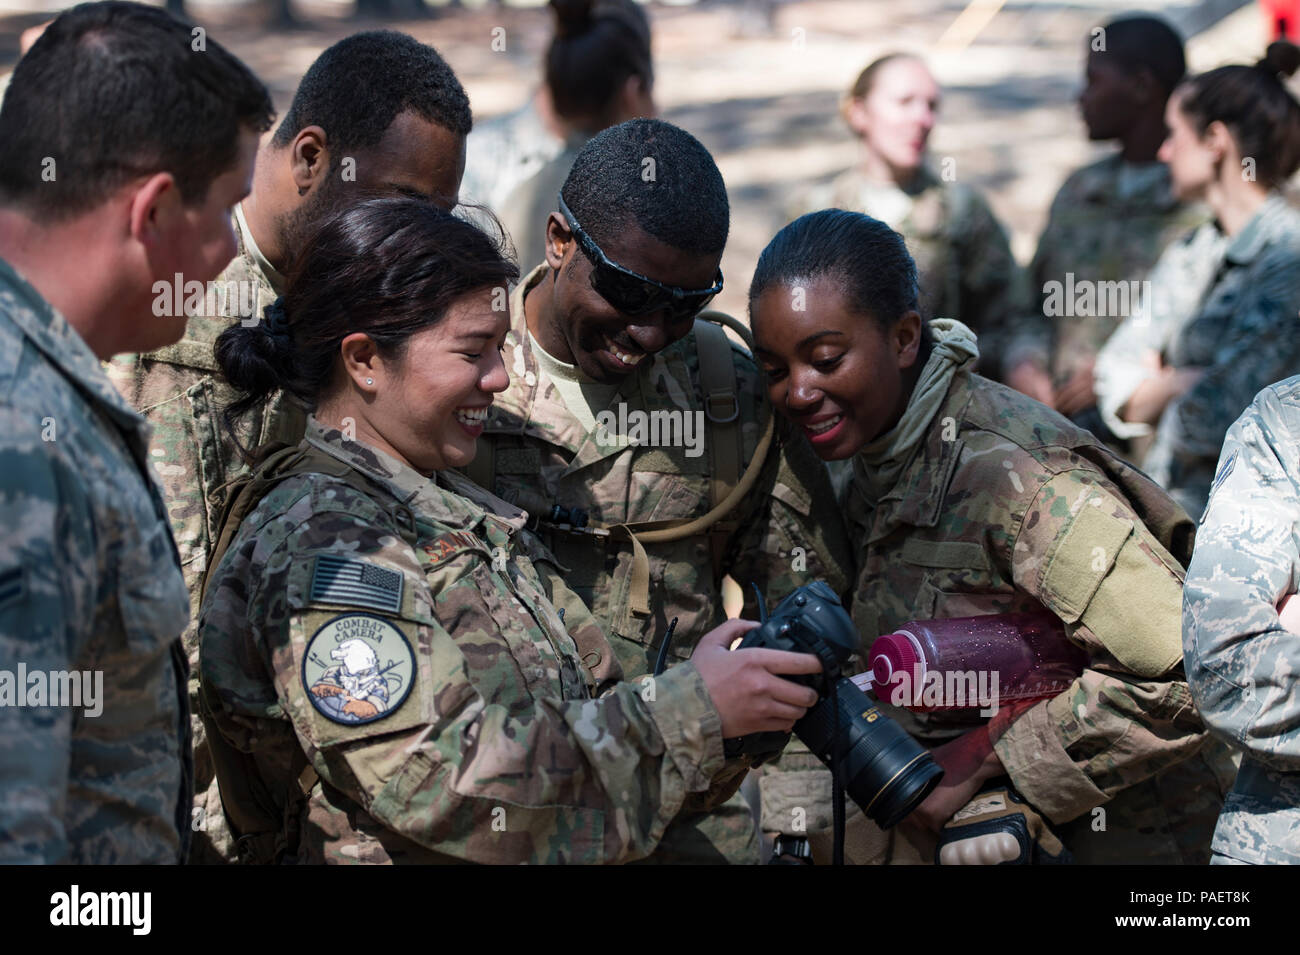 """First and 3rd Combat Camera Squadron airmen look at photos taken by U.S. Air Force Staff Sgt. Marianique Santos, 1st CTCS combat photojournalist, during exercise Scorpion Lens, March 6, 2016, at Fort Jackson, S.C. Exercise Scorpion Lens is an annual Ability To Survive and Operate training evolution mandated by Air Force 3N0XX Job Qualification Standards (3N0XX AFJQS).  Individuals are instructed using a """"crawl, walk, run"""" format of training. The purpose of the training is to provide refresher training to combat camera personnel of all ranks and skill levels in basic tactics, techniques, and pr Stock Photo"""